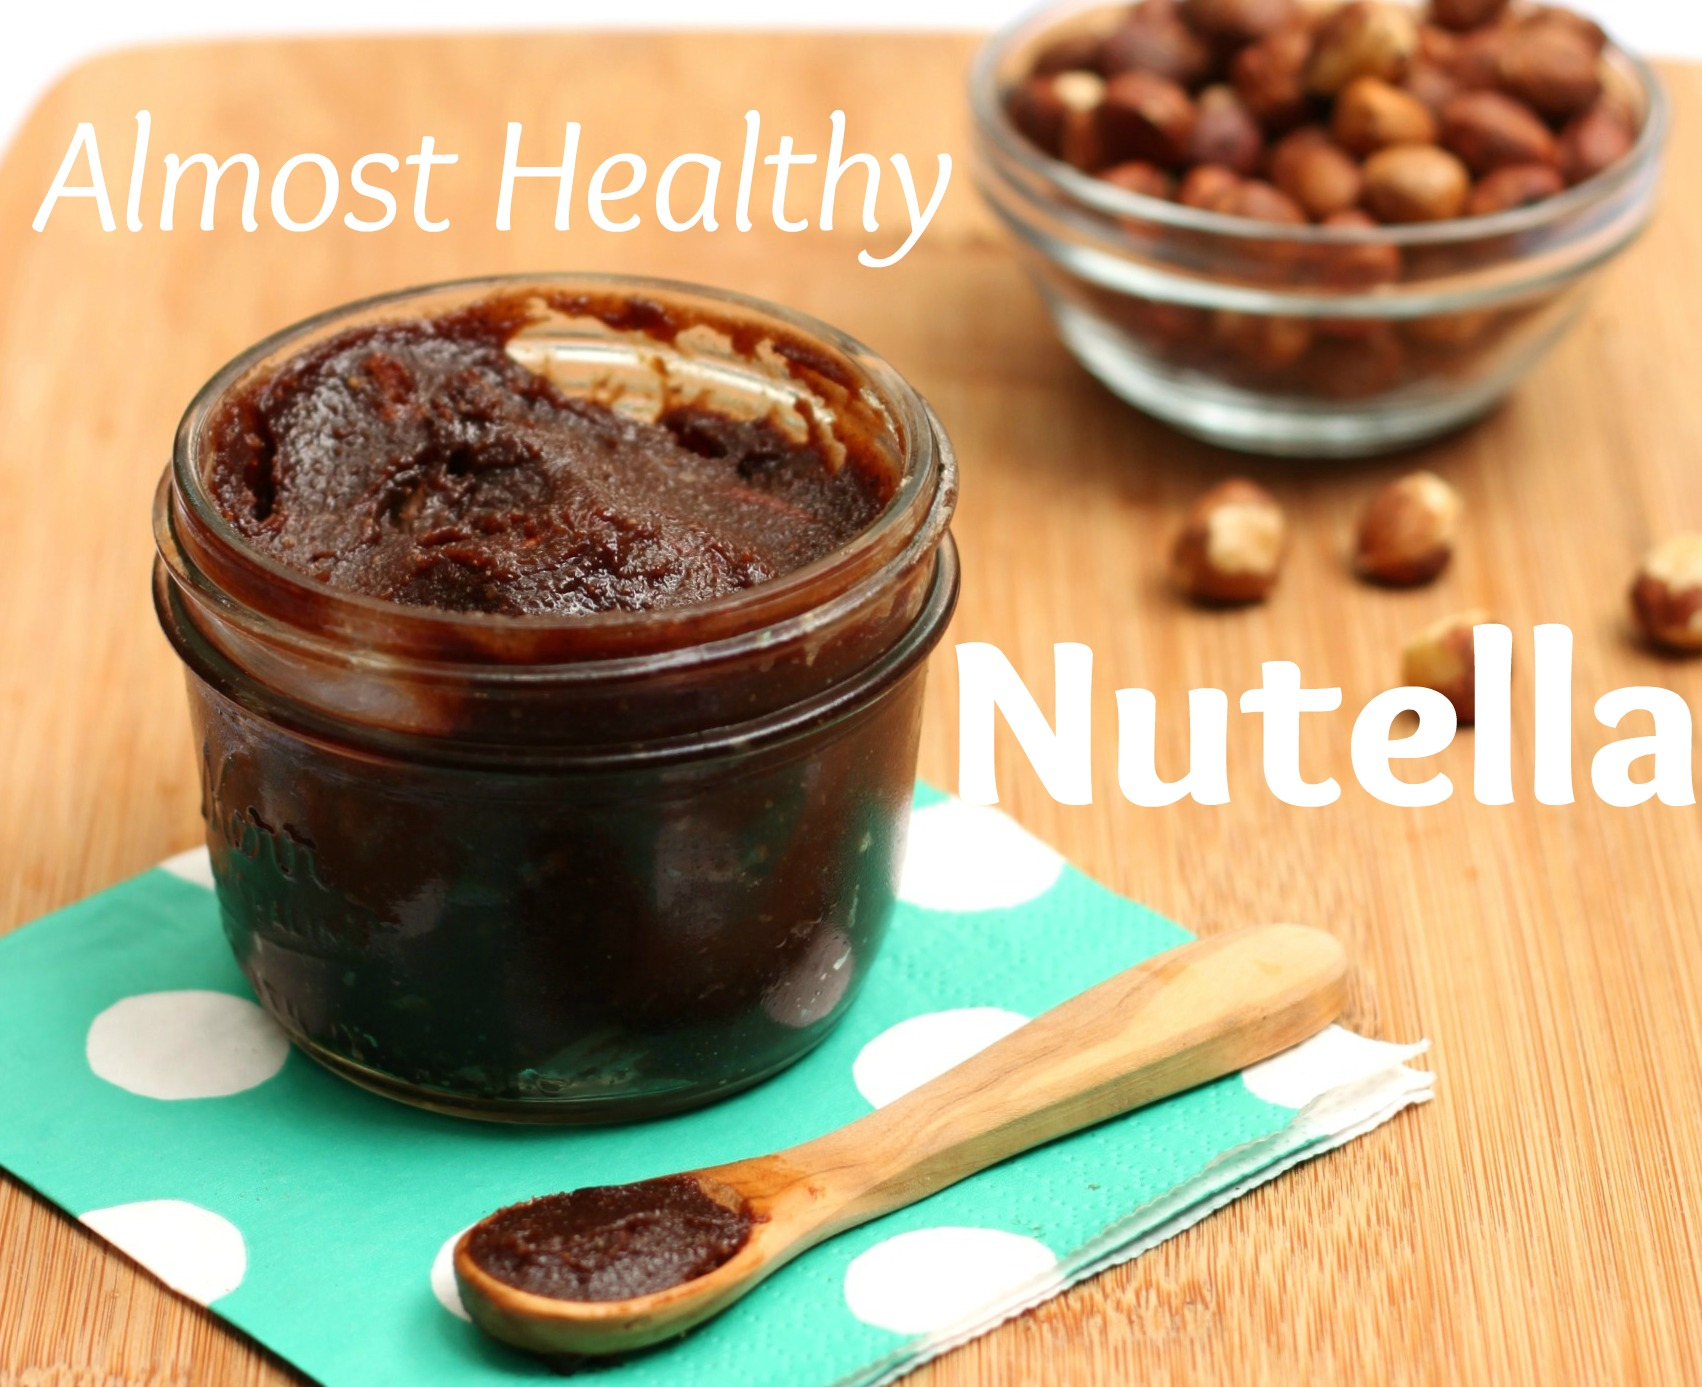 Almost Healthy Nutella text 4